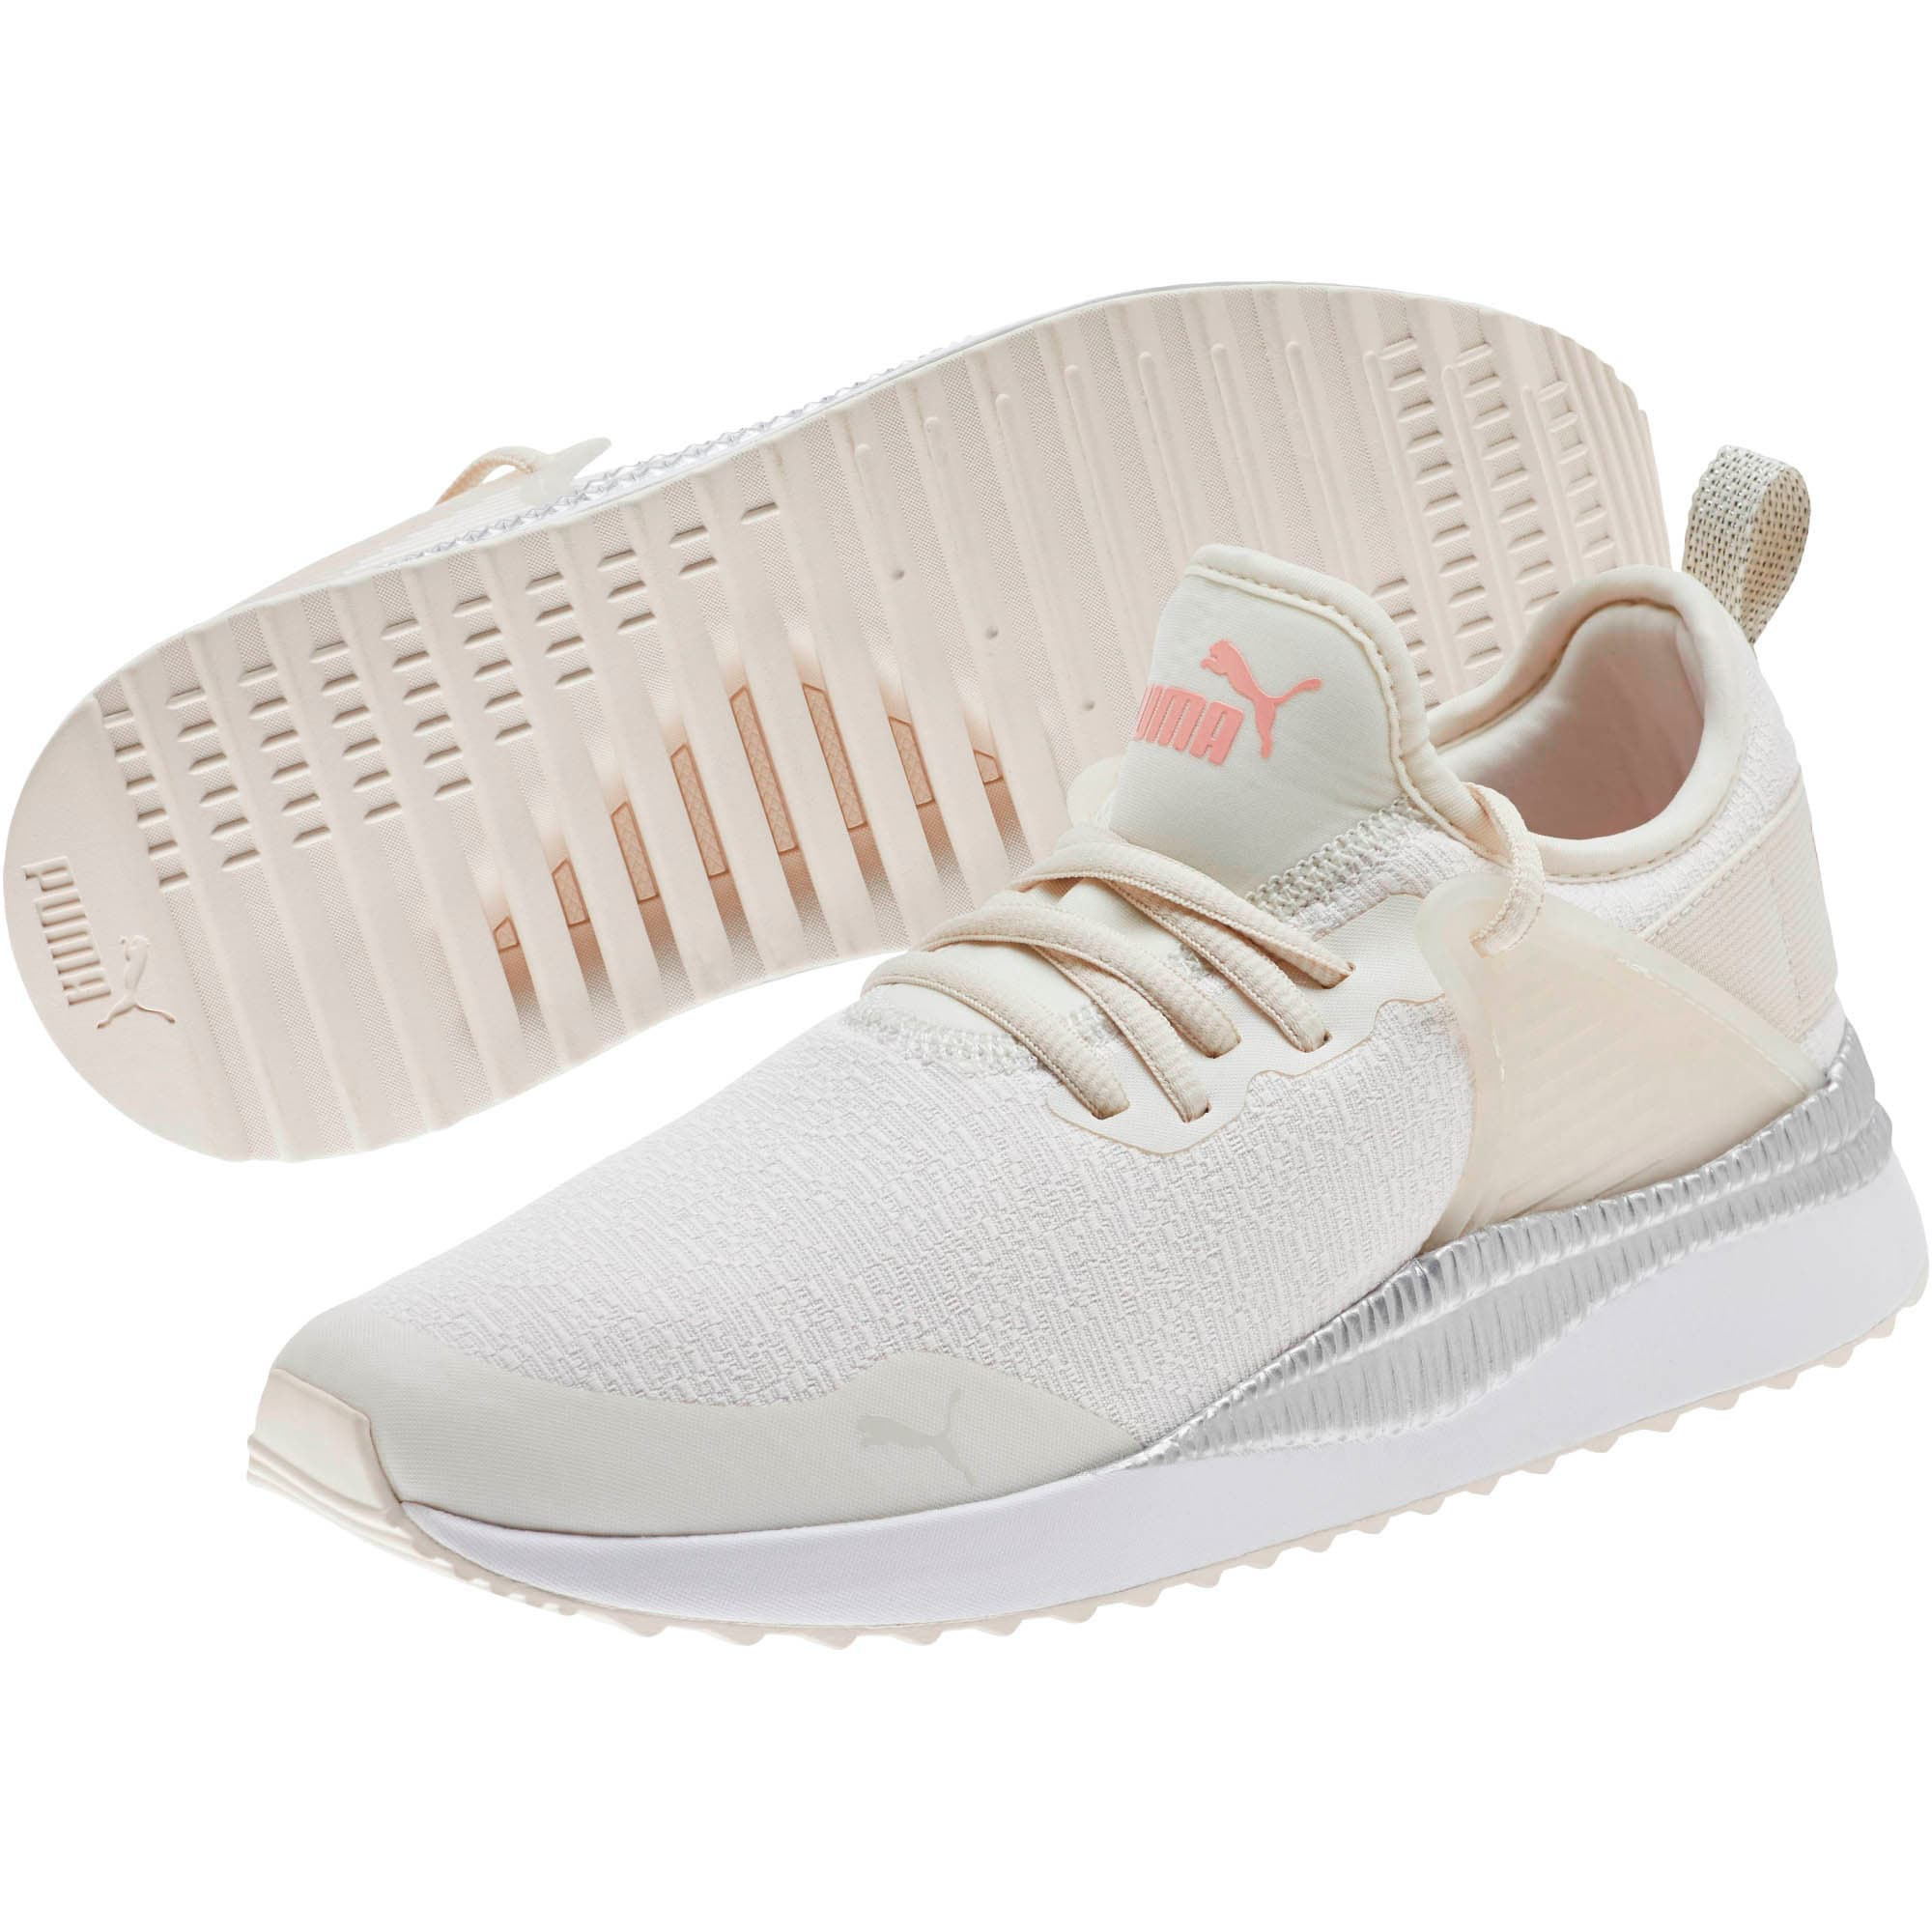 Thumbnail 2 of Pacer Next Cage Glitter Women's Sneakers, Pastel Parchment-Bridal Rose, medium